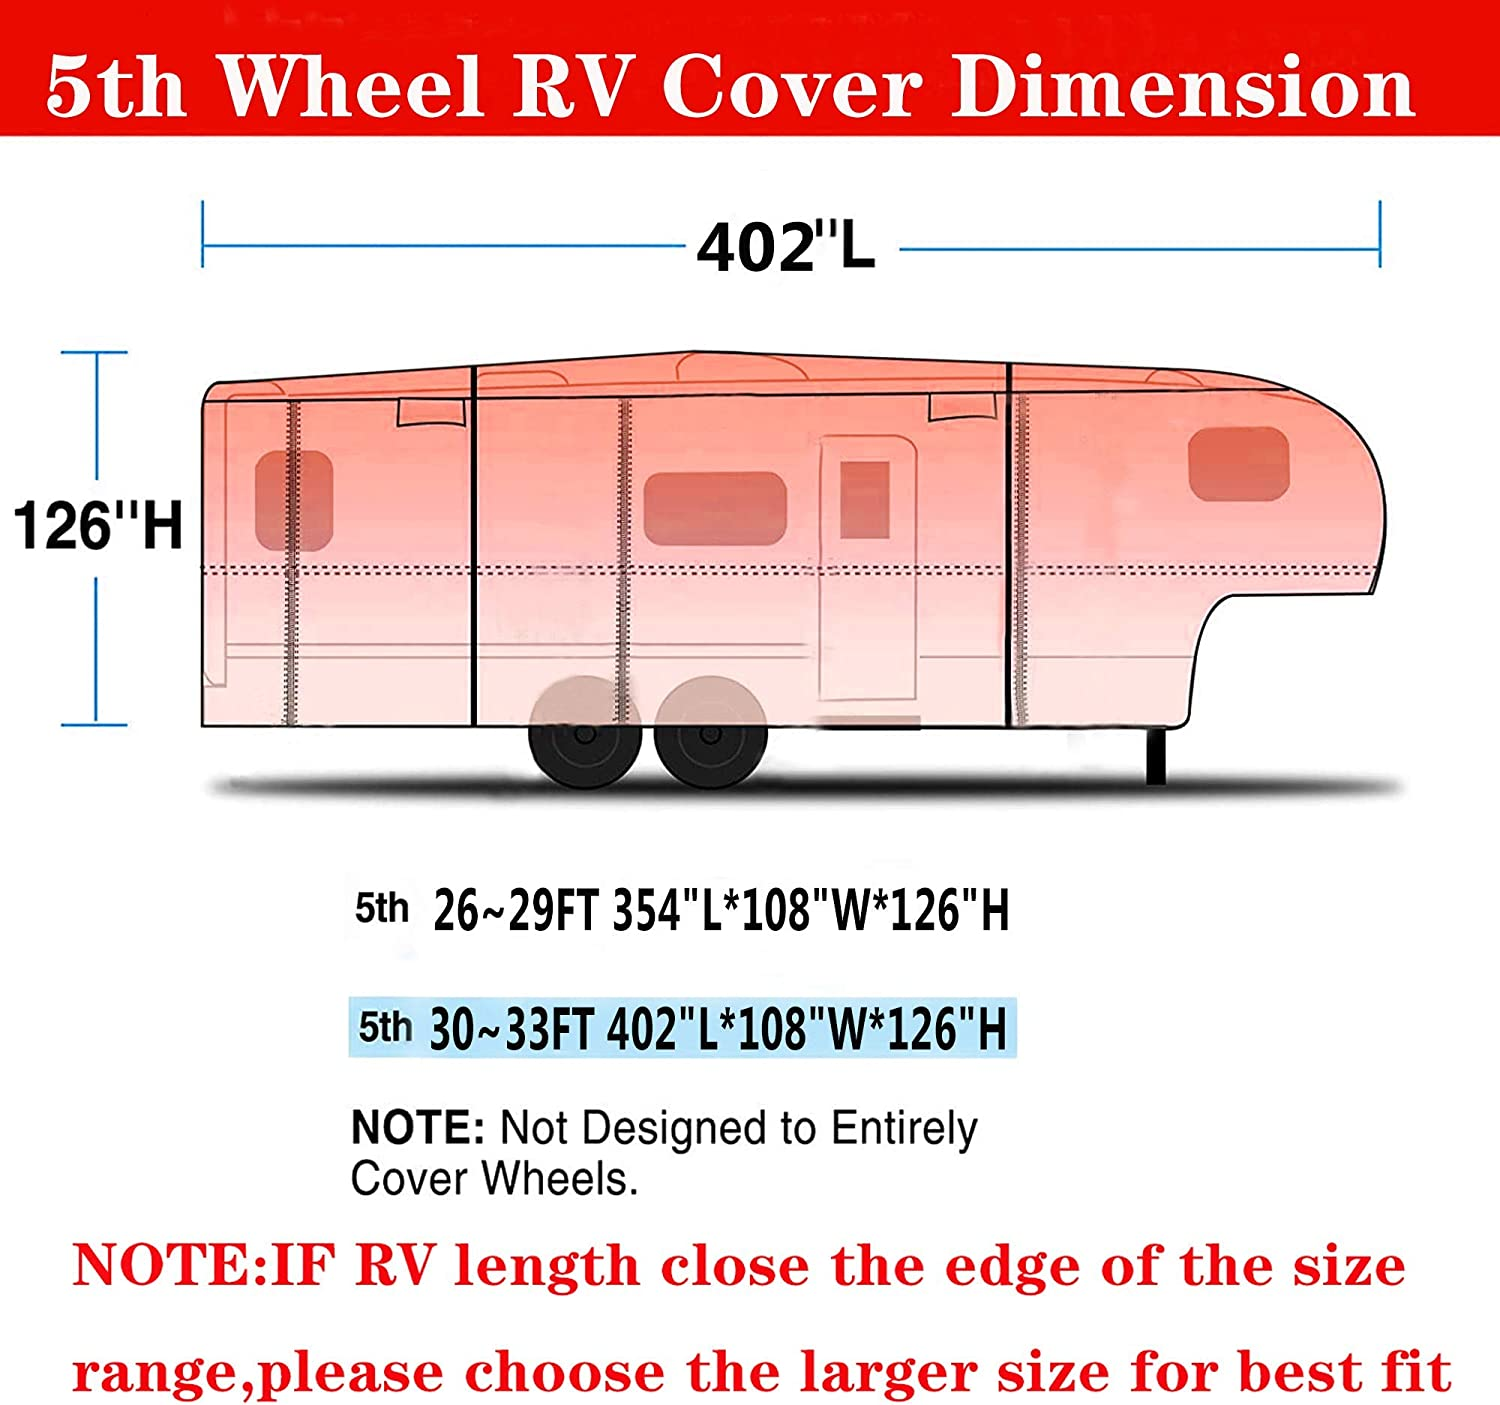 UV Indeed BUY Travel Trailer RV Cover,Waterproof /& Windproof Camper Cover Fits 30~33 FT RV Trailer,6 Layers Top Prevent Top Tearing,Durable Water Resistant RV Covers